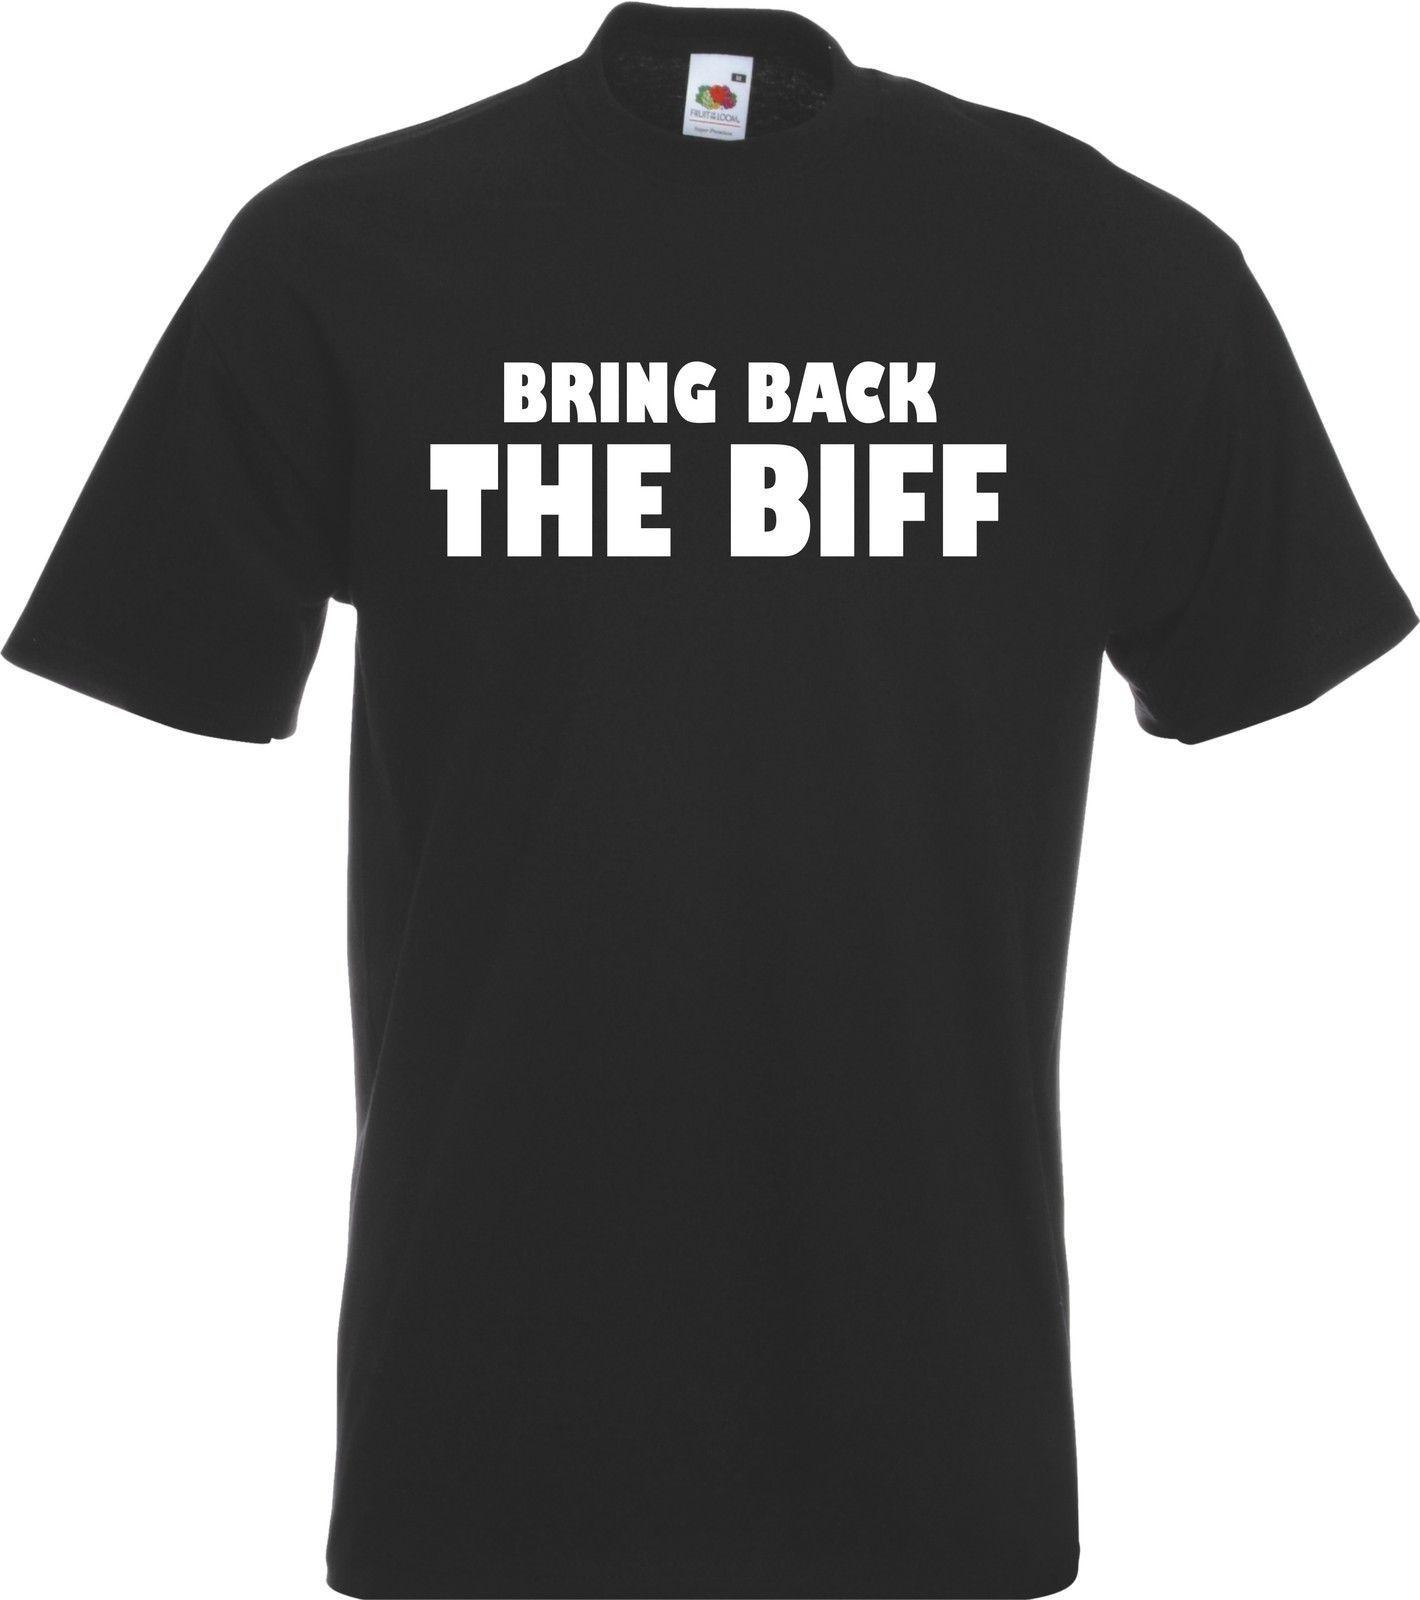 BRING BACK THE BIFF Rugby Player T-Shirt Funny Unisex Casual Tee Gift Free  Shipping Unisex Funny Classic Unique Online with  13.78 Piece on  Noveltgifts s ... 940435930